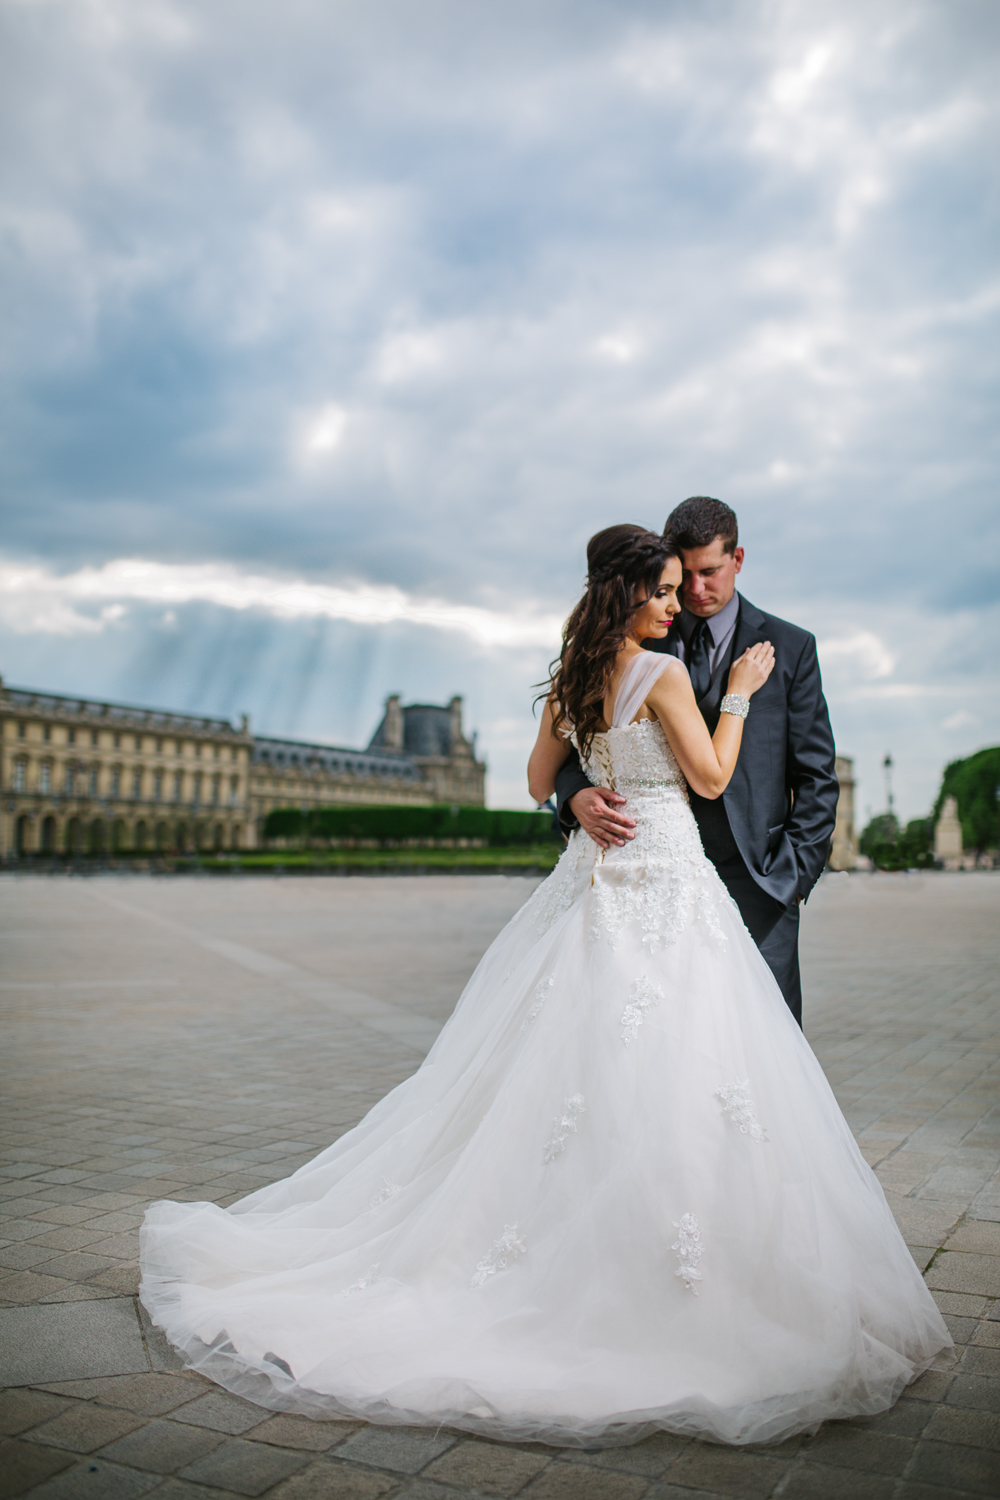 Chico-Wedding-Photography-Ranalla-Photo-Films-Wedding-Video-Wedding-Photographer-Destination-wedding-photographer-venice-wedding-paris-wedding-paris-night-eiffel-tower-8.jpg